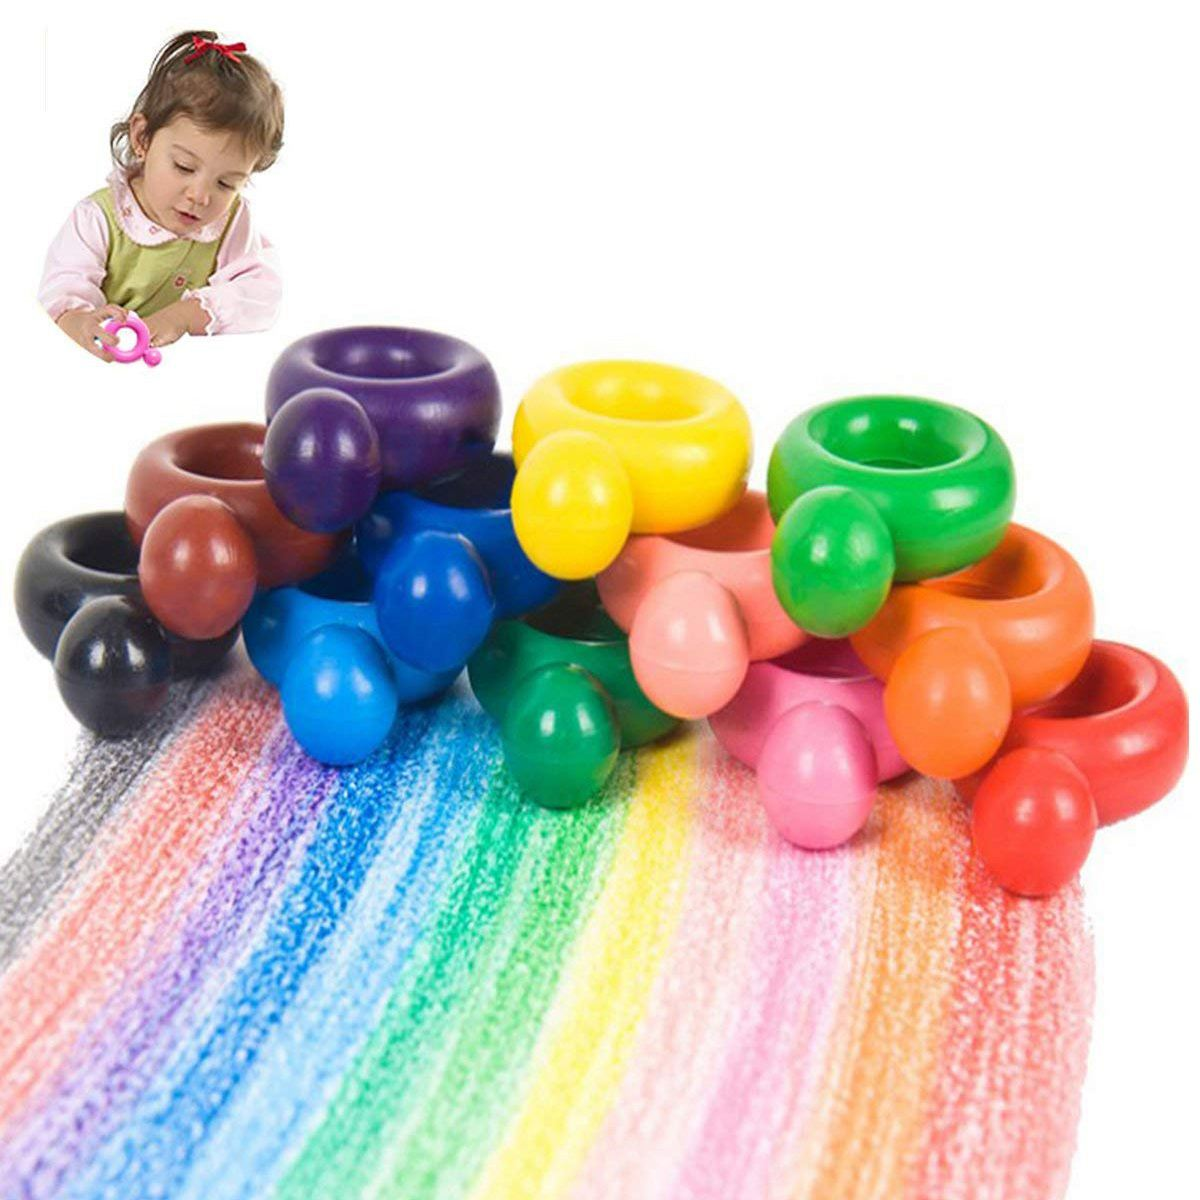 12 Color Ring Crayons For Toddler Baby Kids Washable Safe Palm-Grip Wax Crayons Painting Drawing Tool Toys School Art Supply